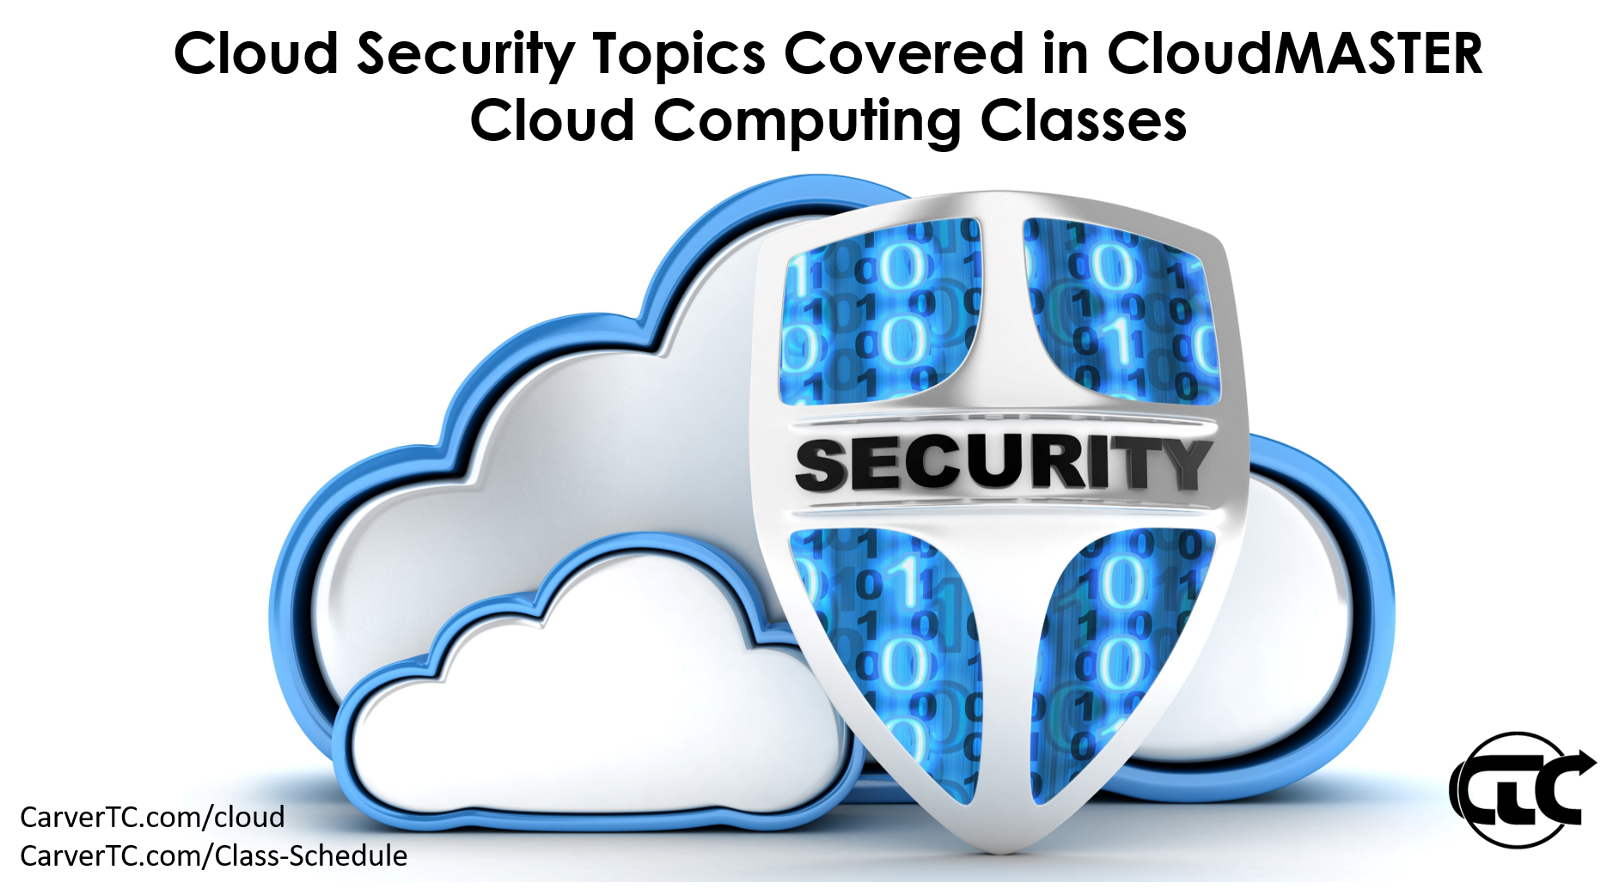 Cloud Security Topics Covered In Cloudmaster Cloud Computing